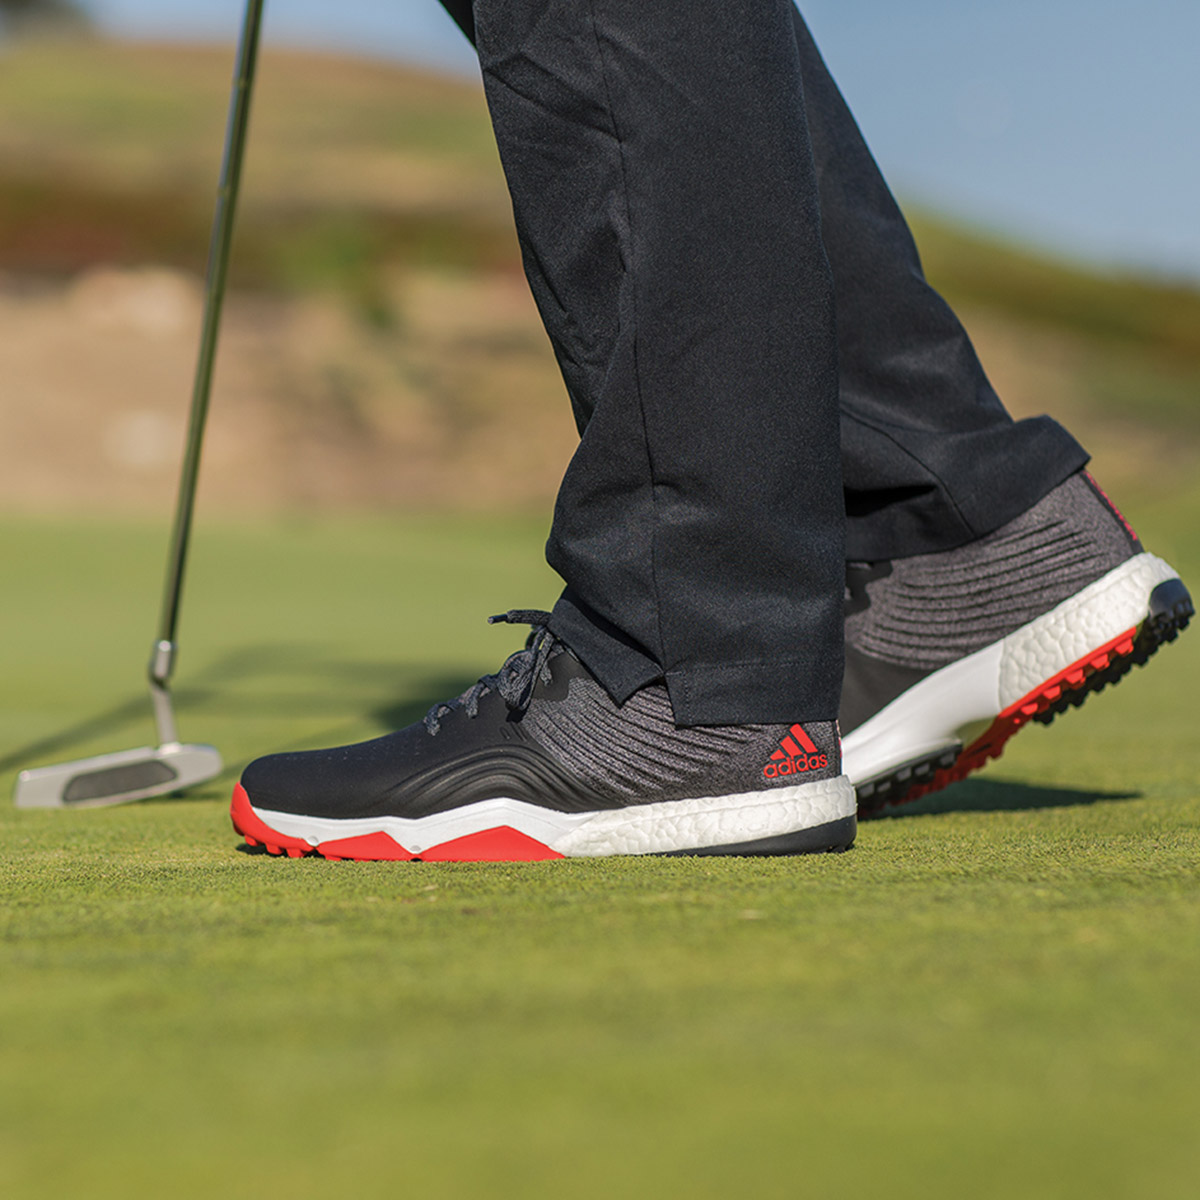 promo codes various colors buy good adidas Golf Adipower 4Orged S Shoes